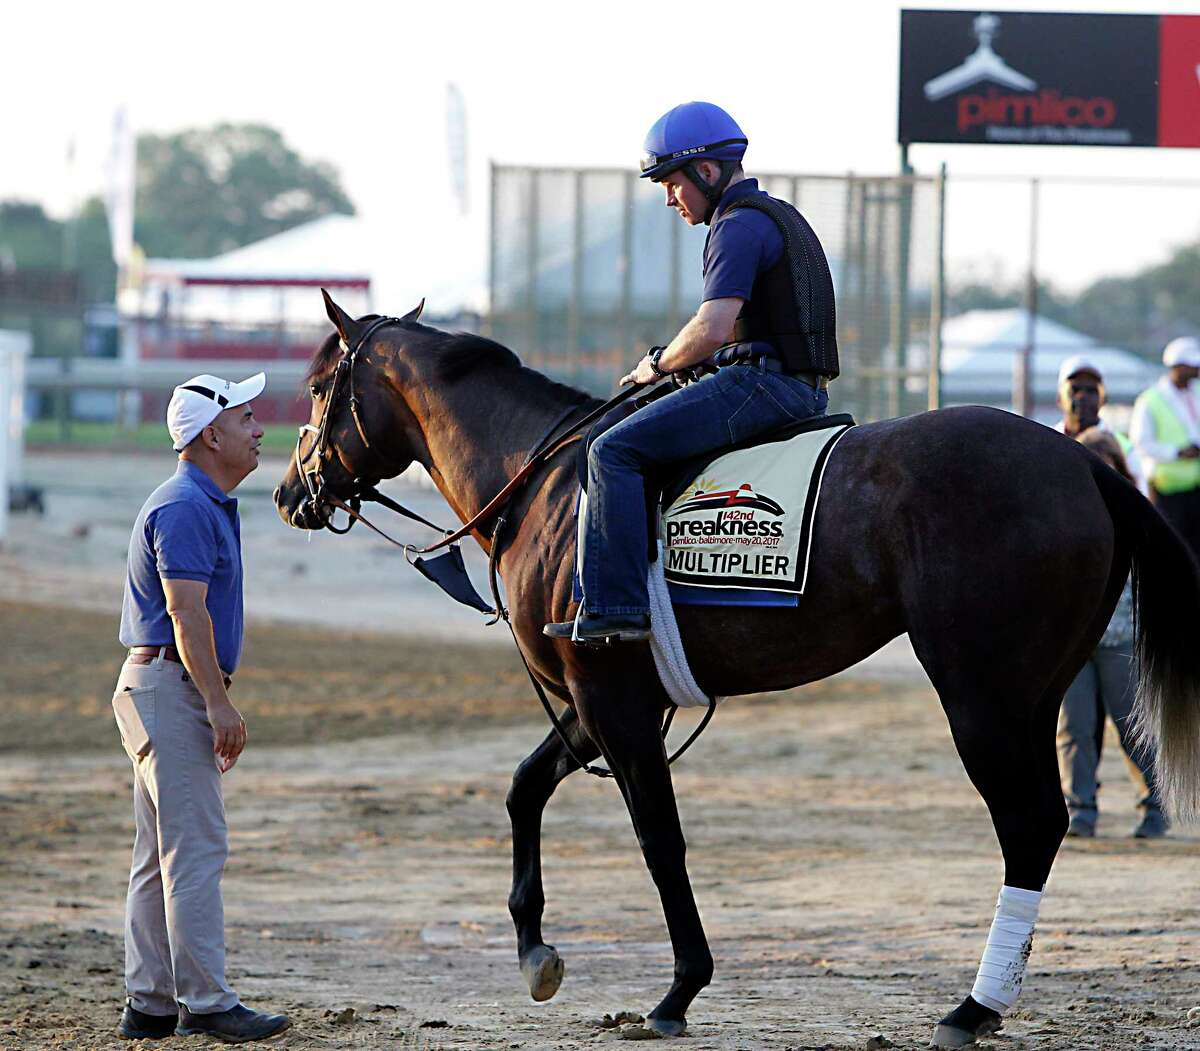 Trainer Mark Casse, left, talks with fellow conditioner Brendon Walsh, riding his Preakness Stakes entrant Multiplier, at Pimlico Race Course in Baltimore, Friday, May 19, 2017. Casse is the trainer of Classic Empire. (AP Photo/Garry Jones) ORG XMIT: MDGJ103